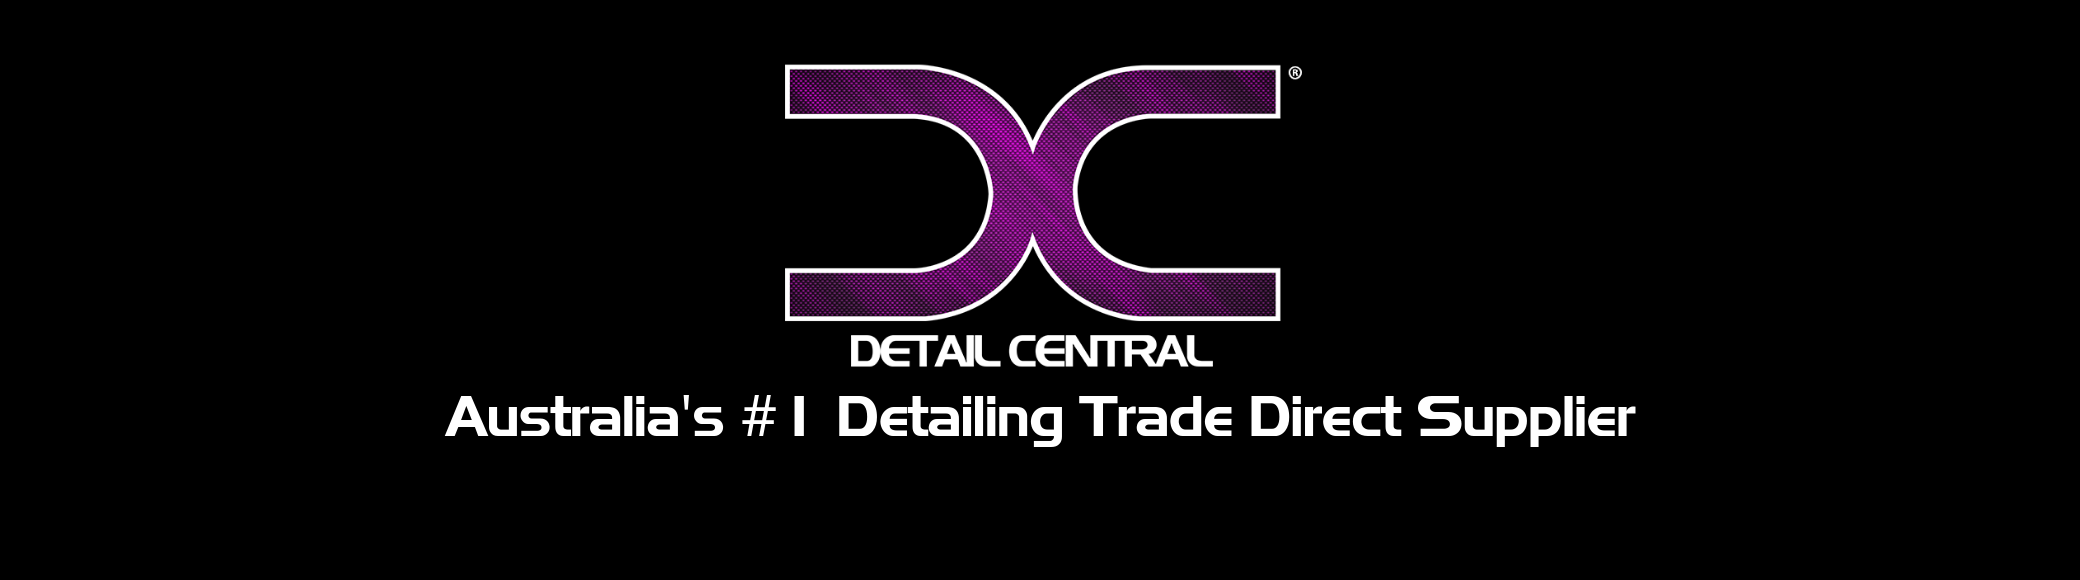 Car Detailing Products Supplies Australia Car Care Cleaning